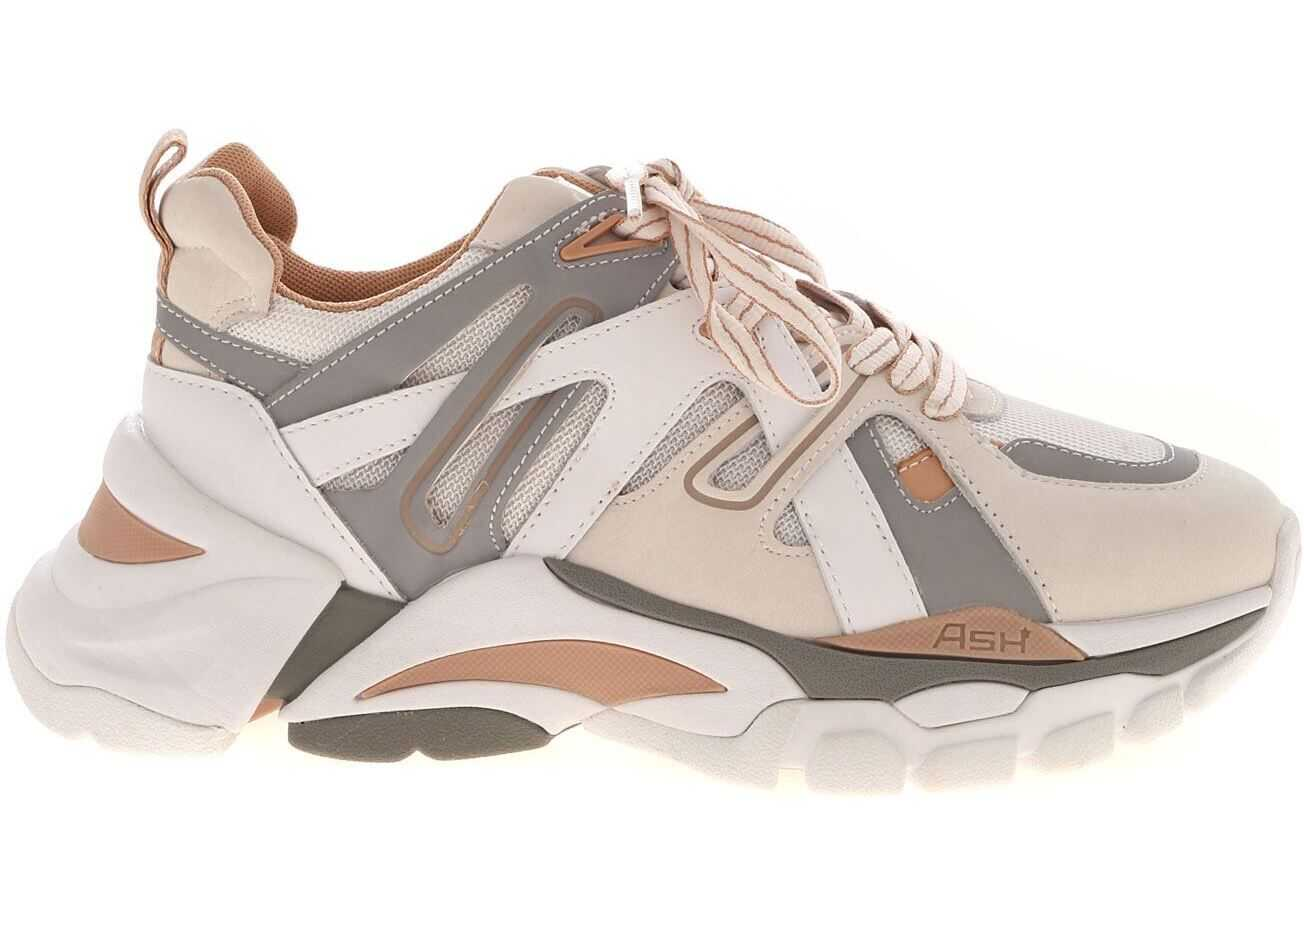 ASH Flash Leather Sneakers In Beige And Grey White